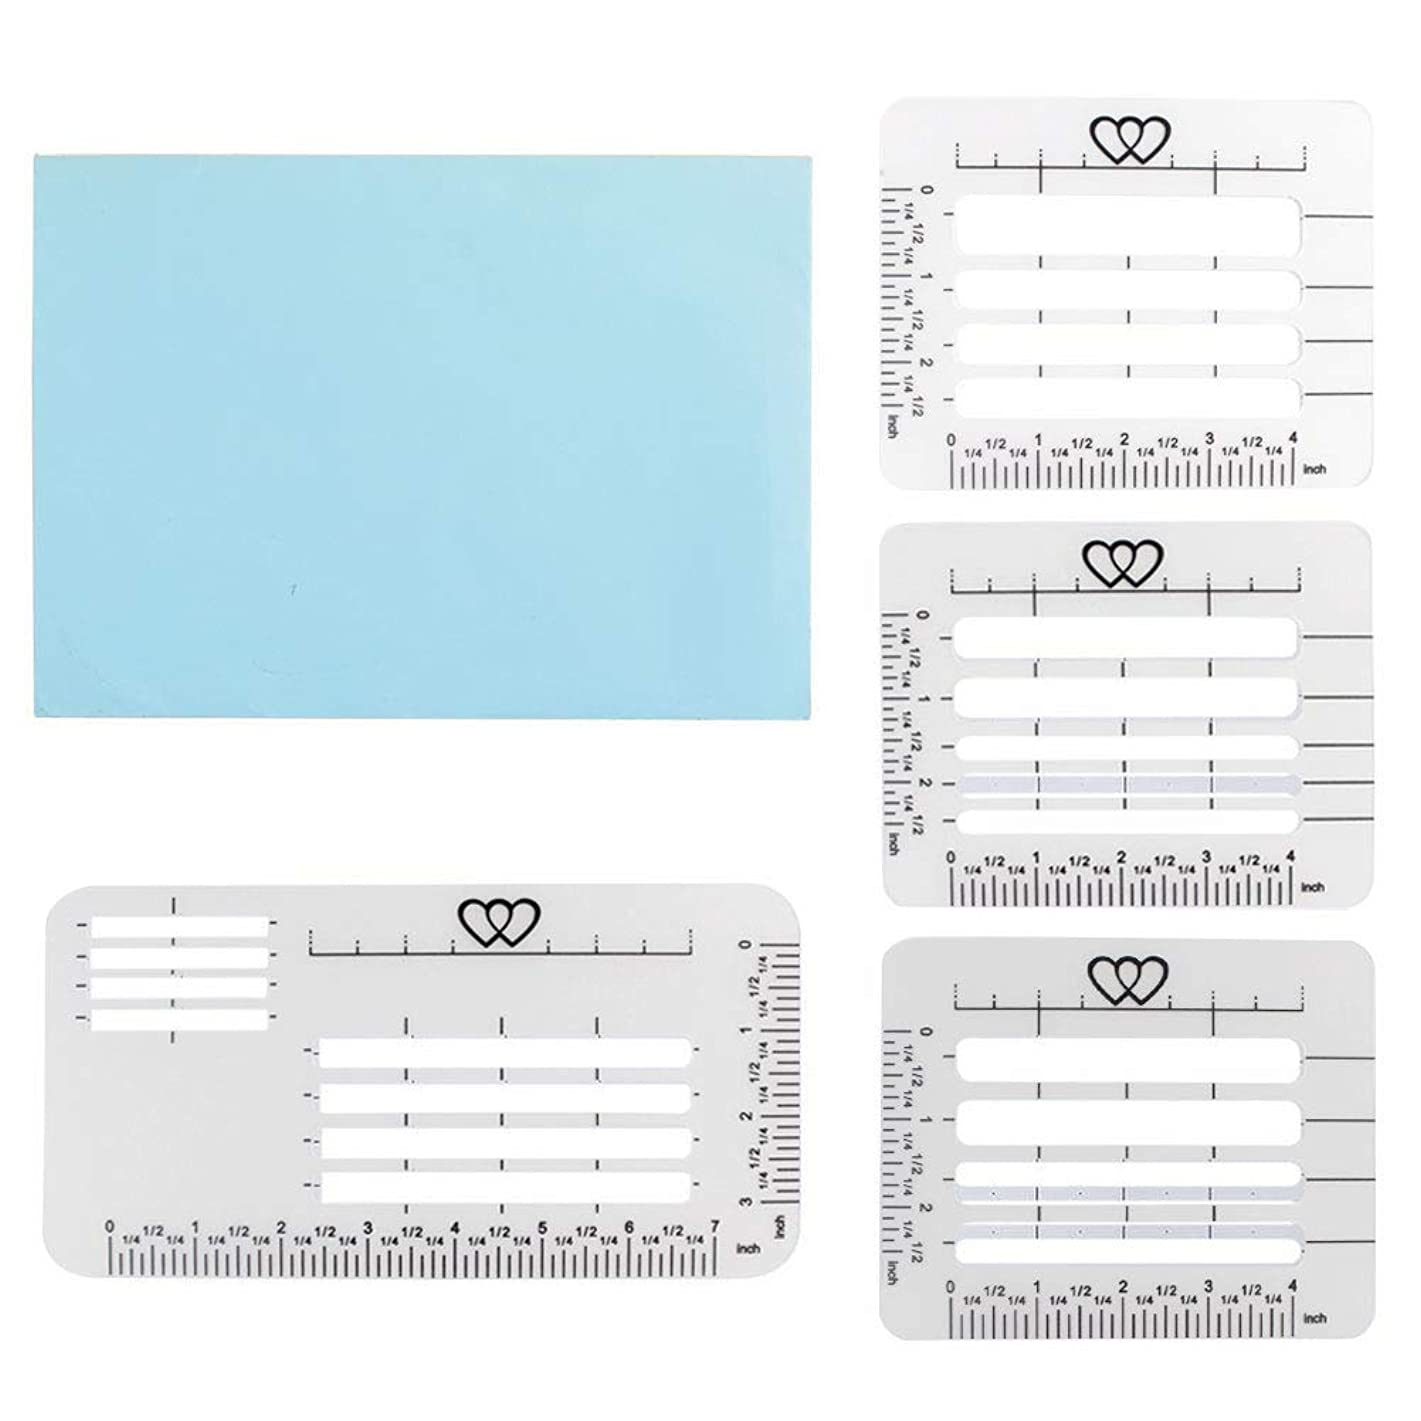 mifengda 4Pcs 4 Style Envelope Addressing Guide Stencil Templates Lettering and Envelope Addressing Guide Fits a Wide Range of Stationery and Envelopes Thank You Card Mother's Day